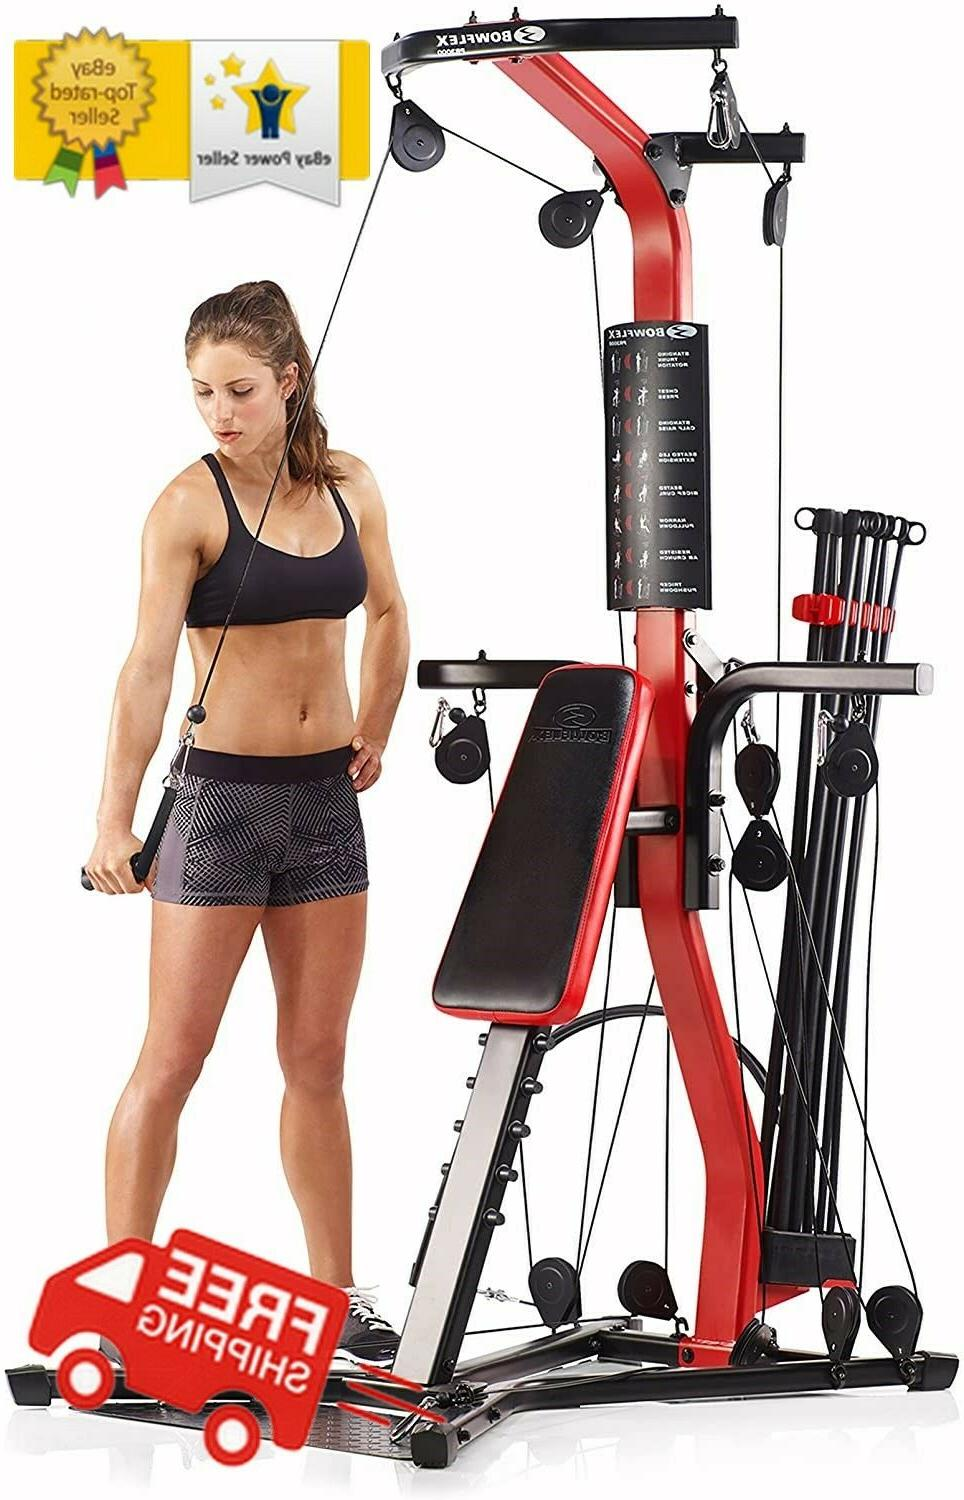 pr3000 home gym series free shipping new